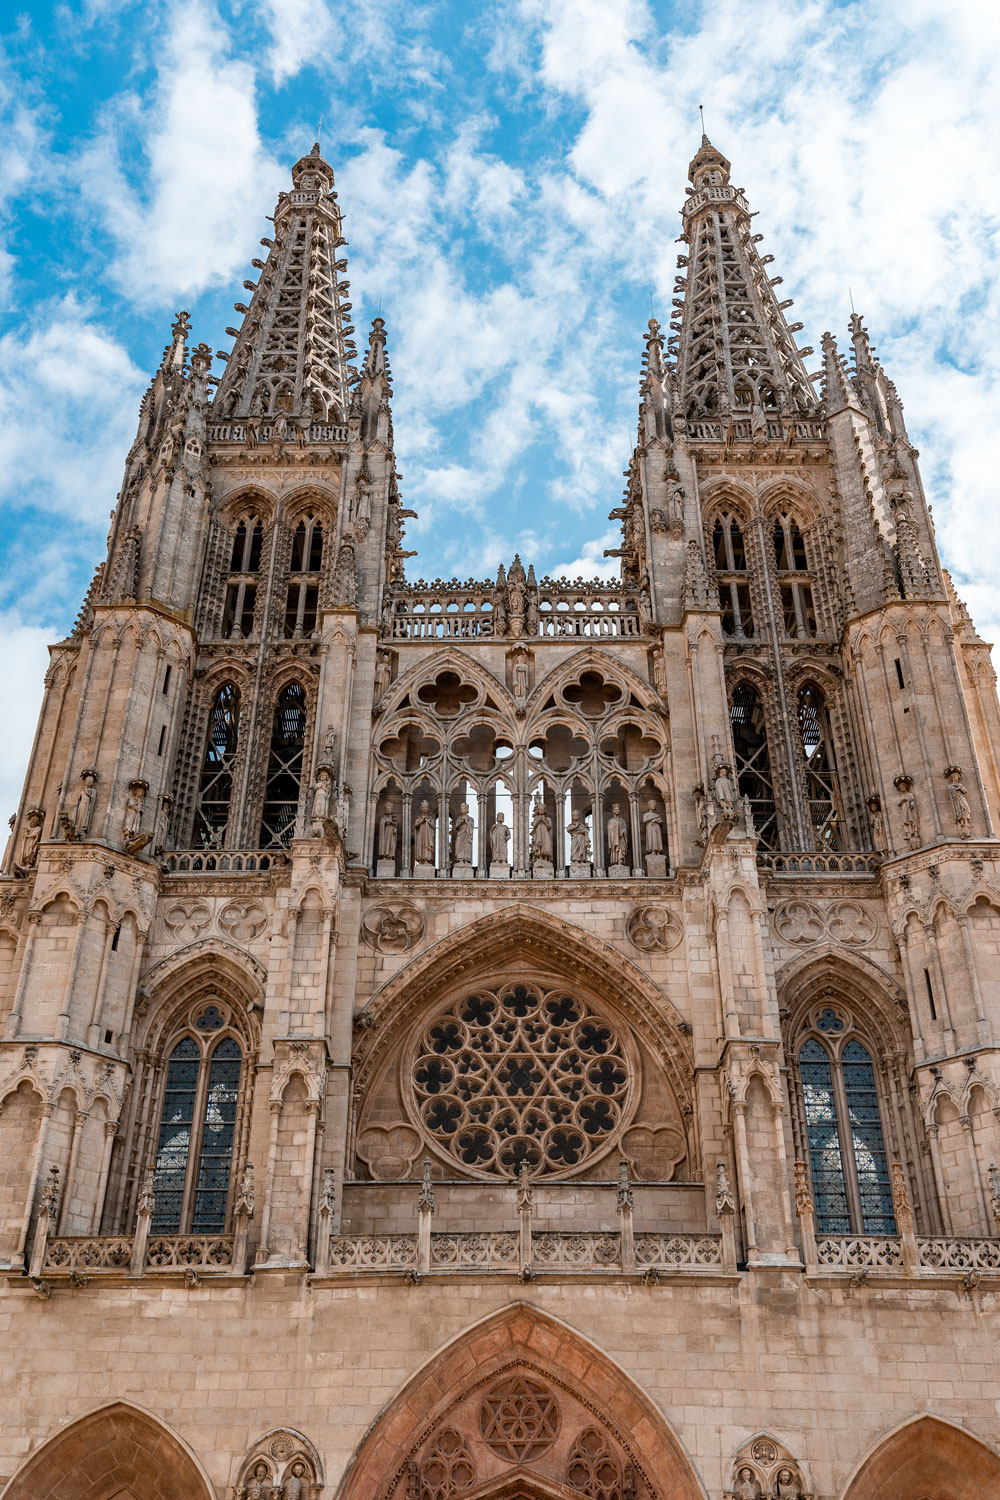 Cathedral of Burgos impressive towers